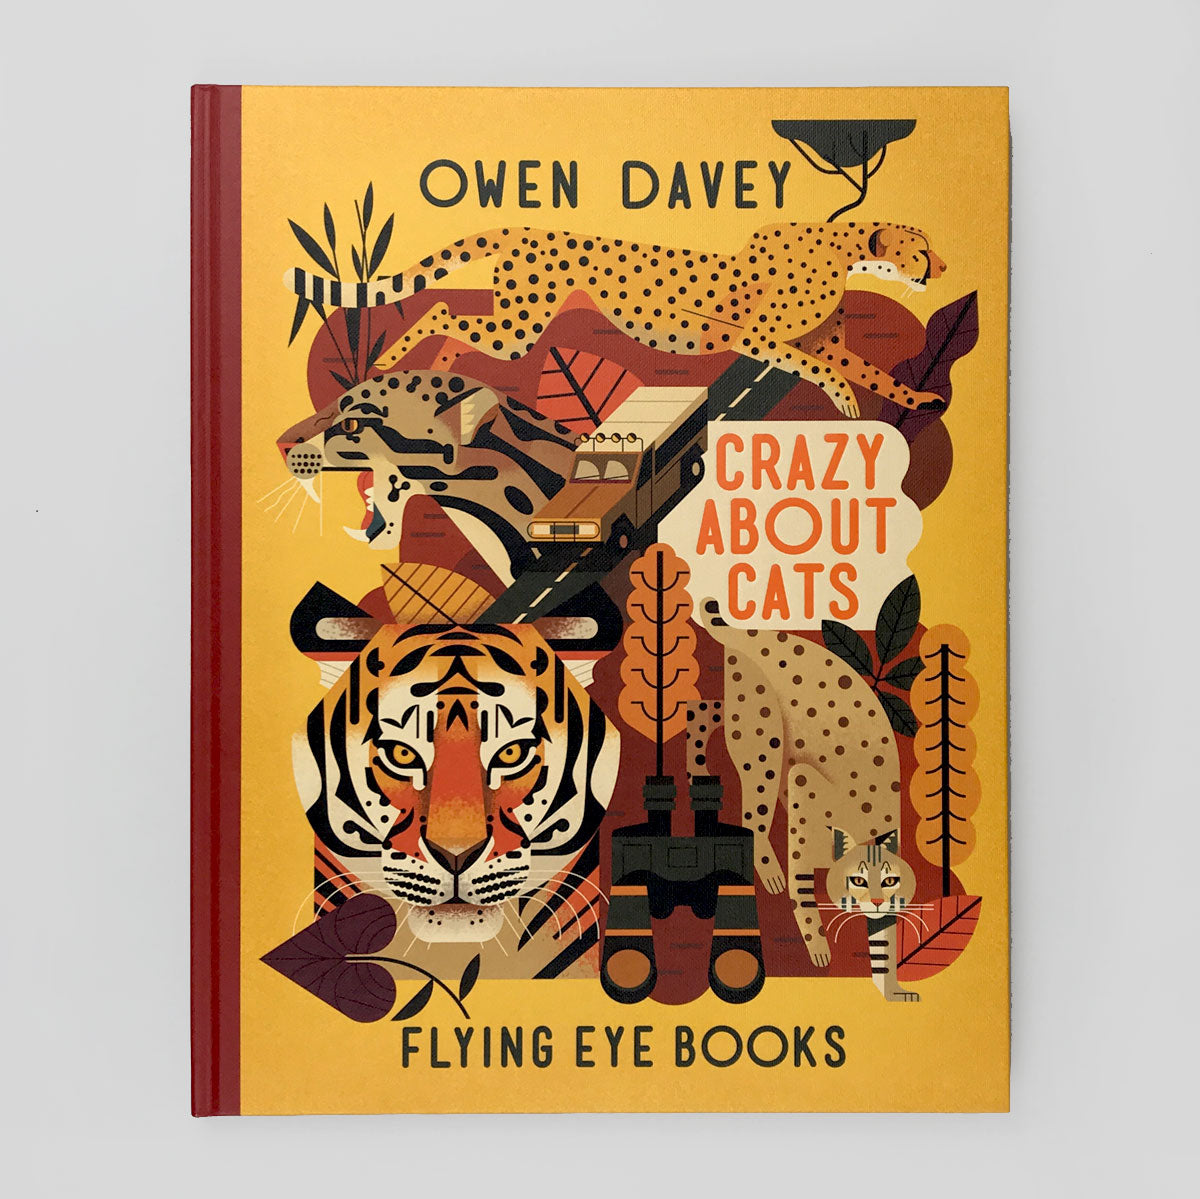 Crazy About Cats by Owen Davey